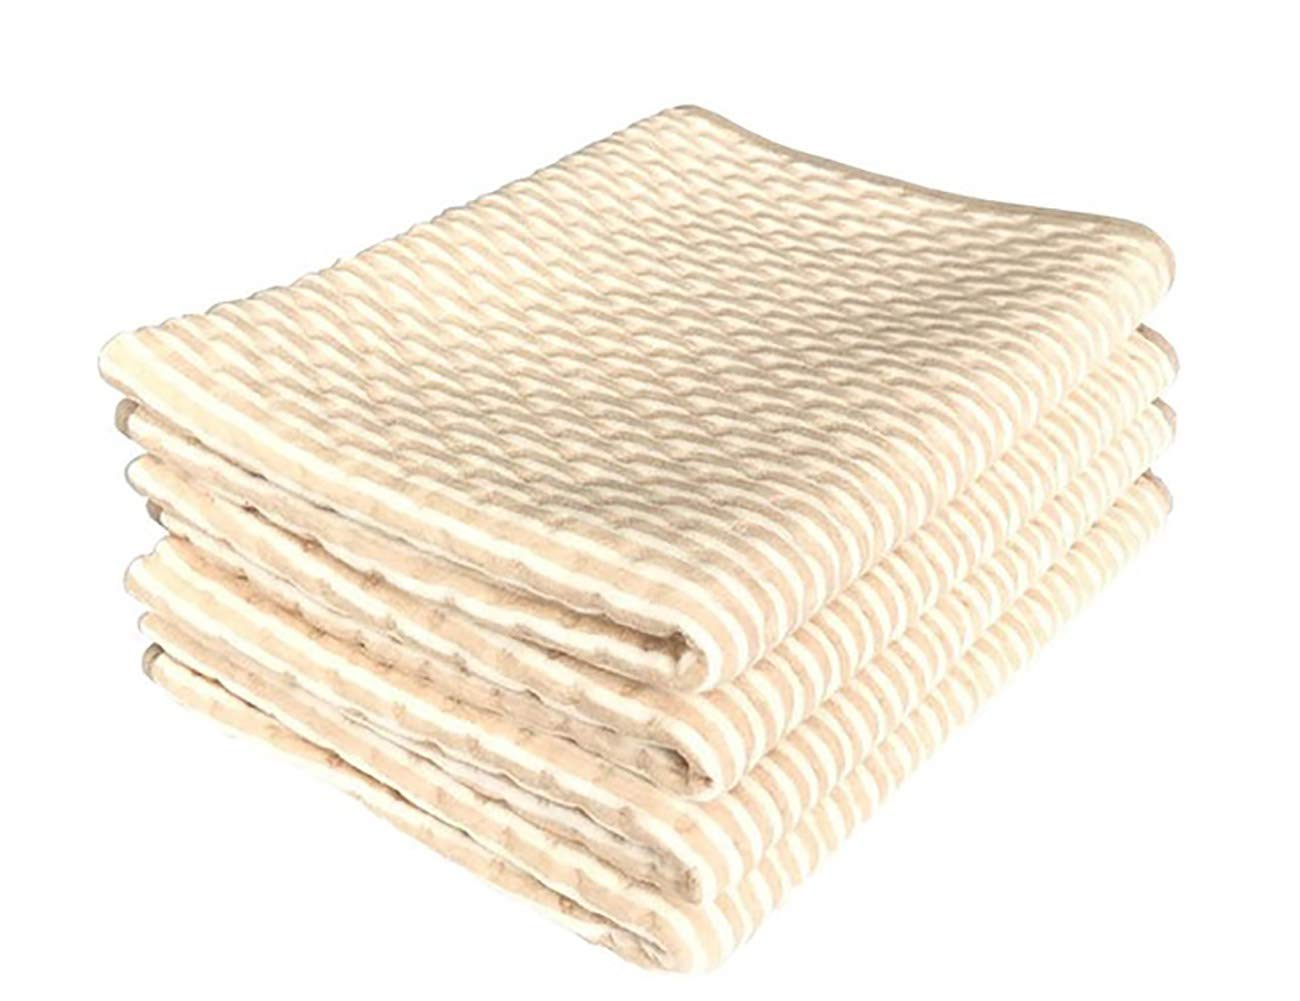 35X59 Washable Waterproof Urine Pads Incontinence Bed Diaper Changing Mat Mattress Sheet Protector Beige Absorbency Hosptial Pee Pads Quilt Underpad Sheet for Baby Adults